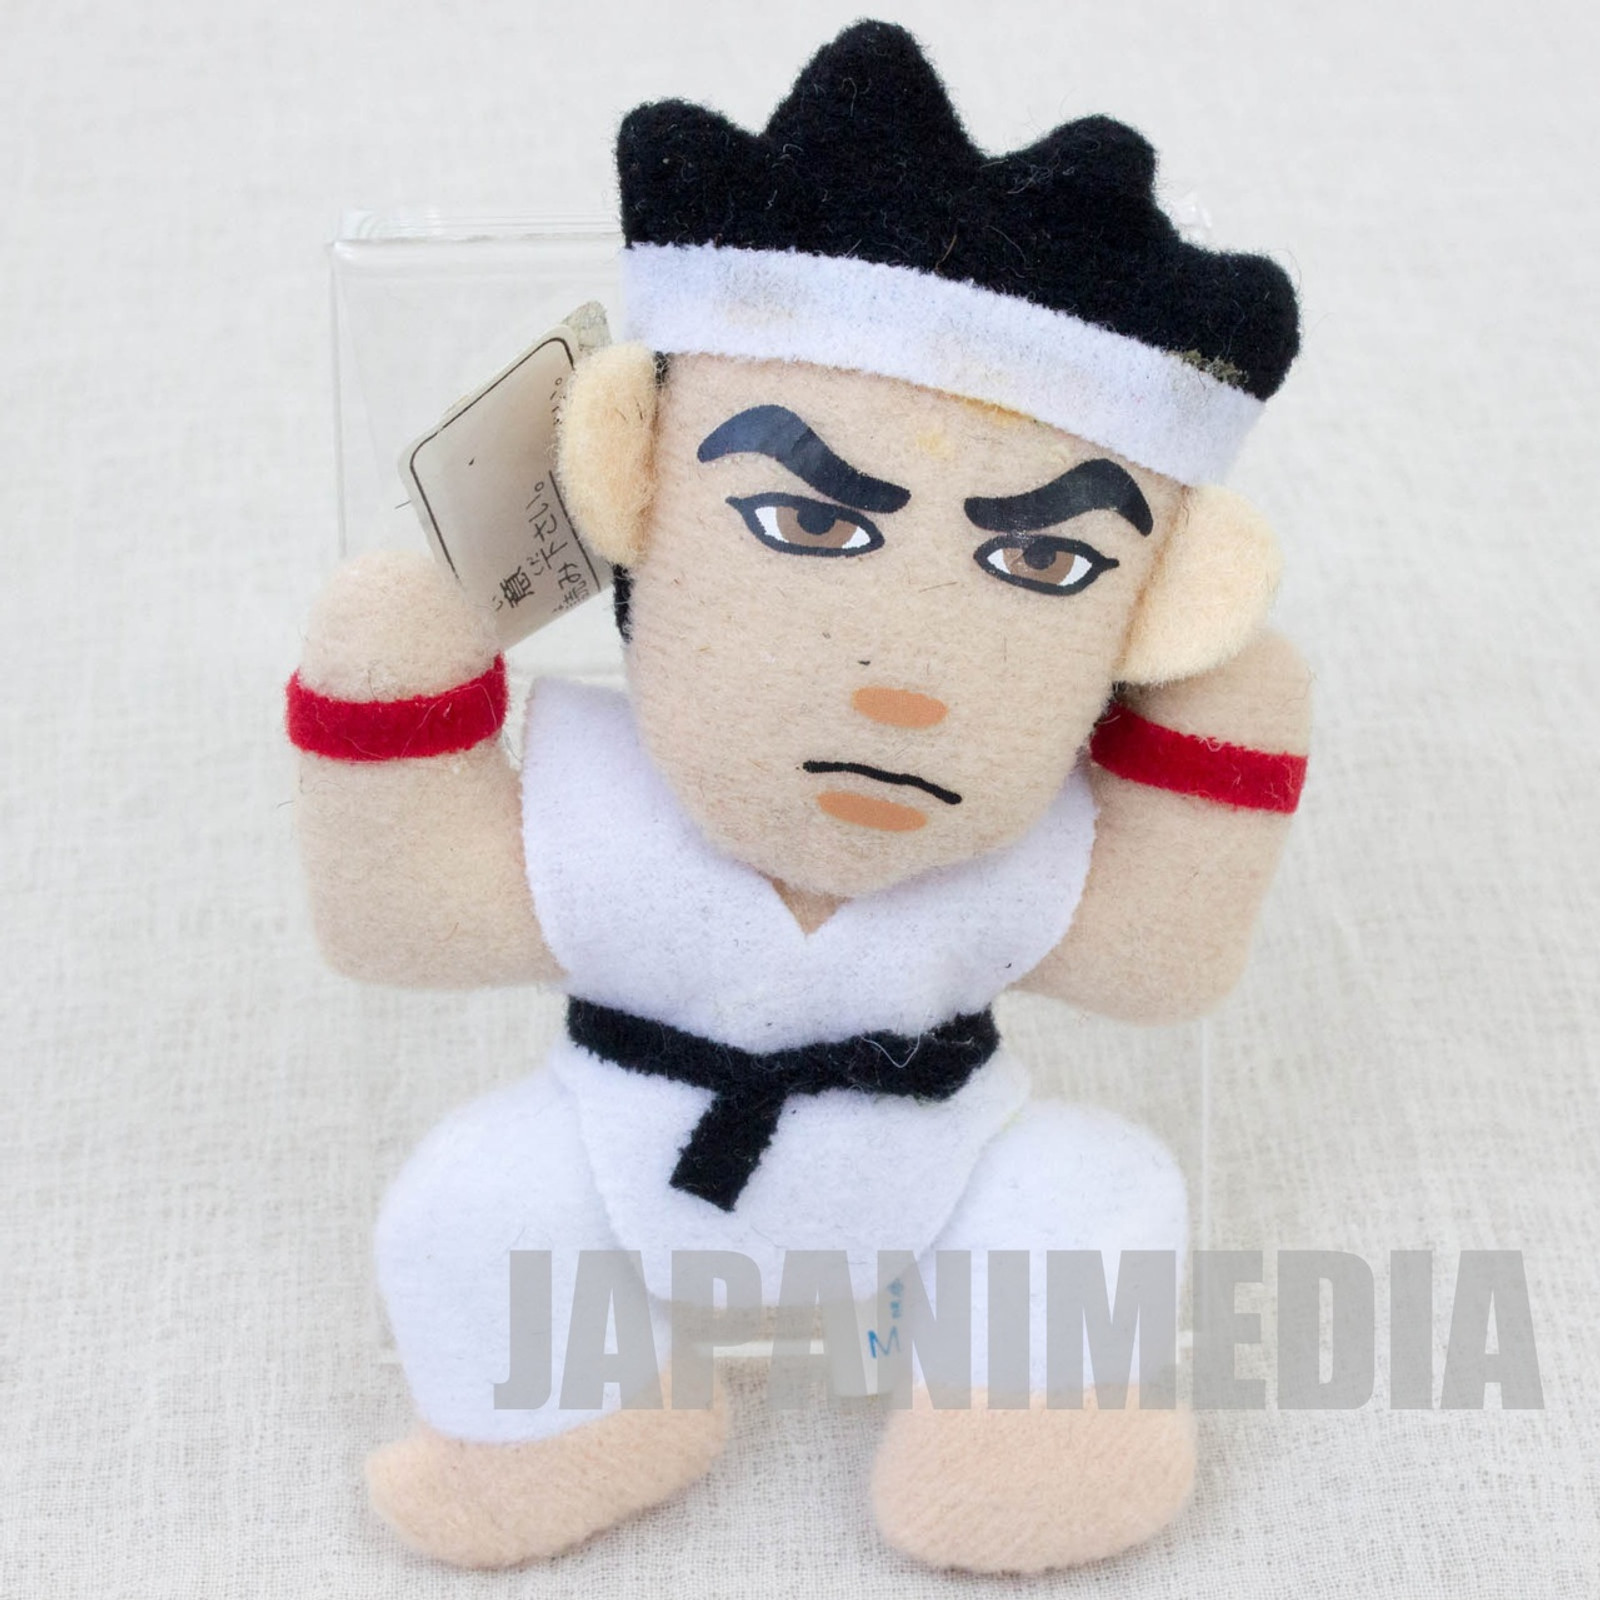 "Virtua Fighter 2 Akira Yuki 3.5"" Mini Plush Doll SEGA 1995 JAPAN GAME 2"